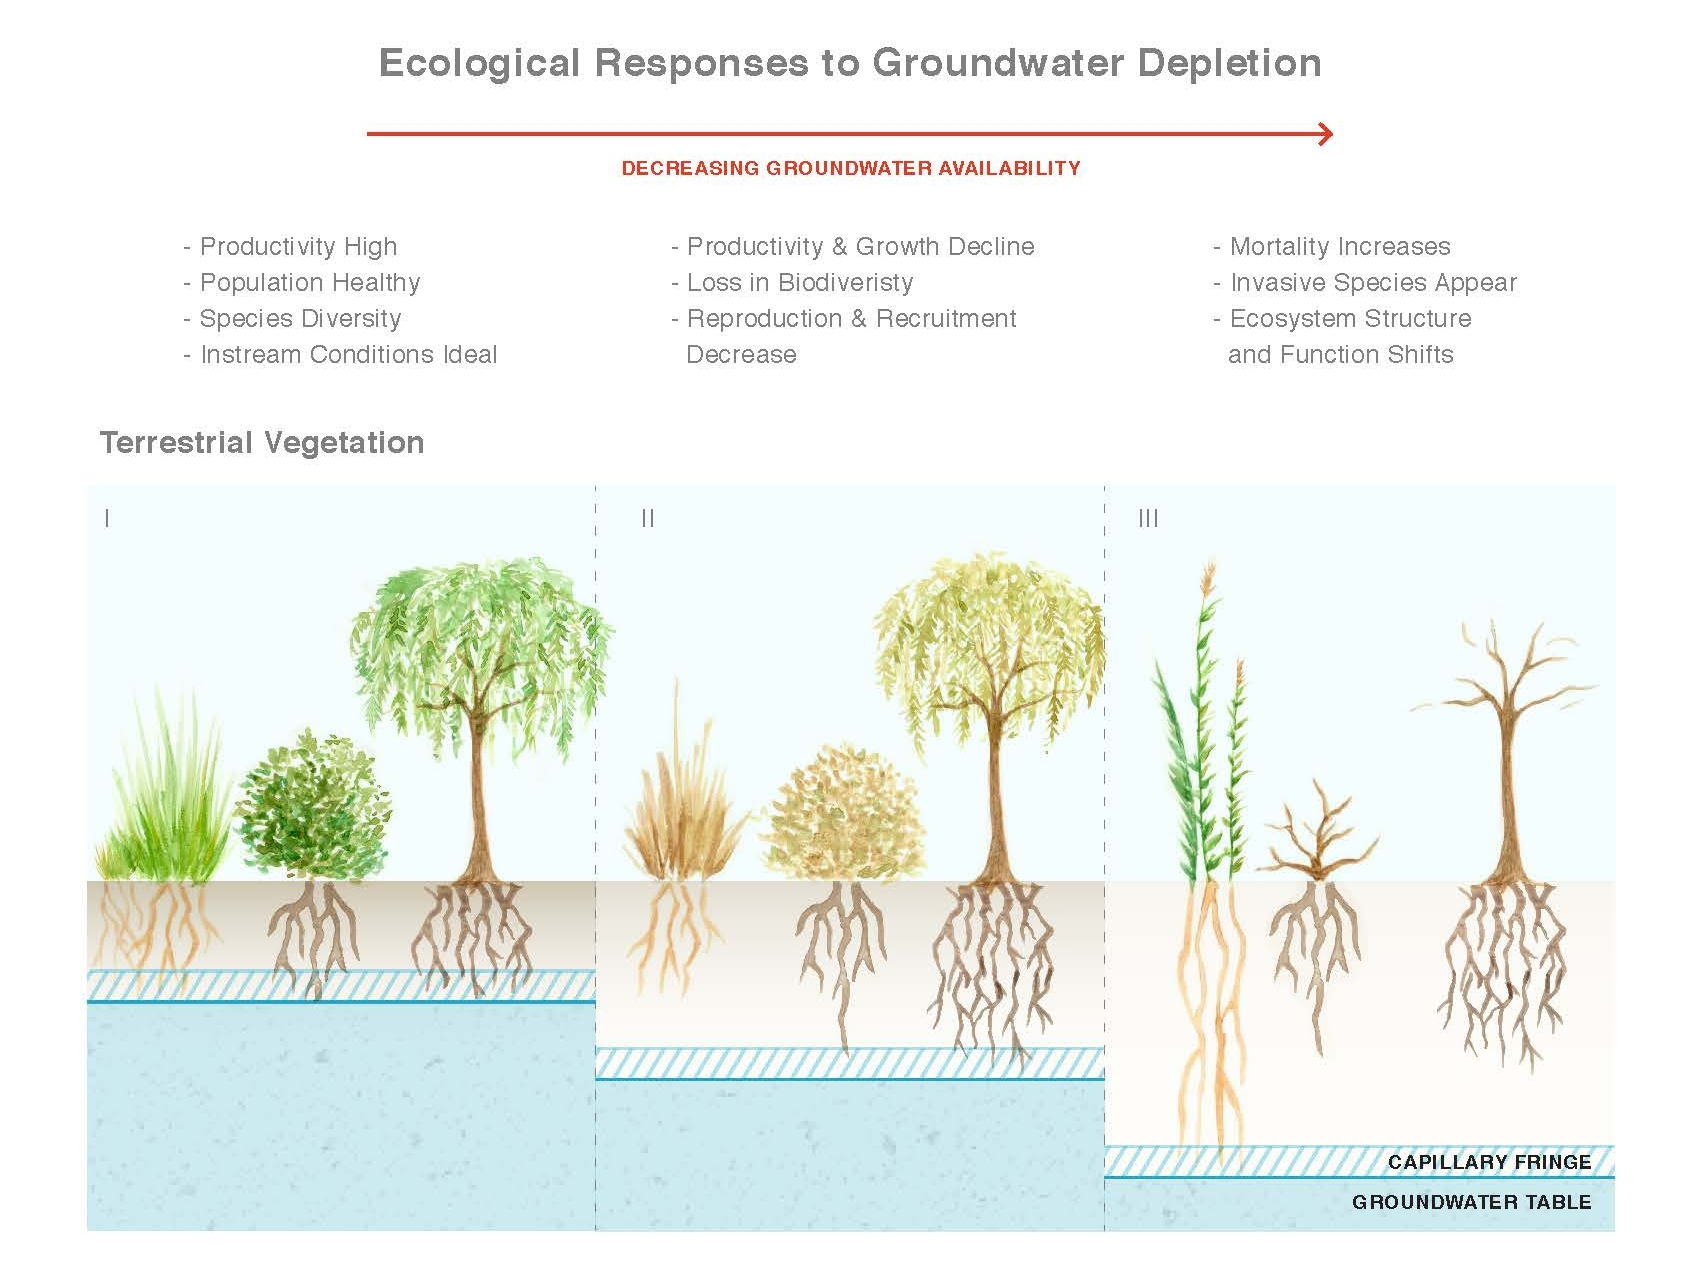 Figure 3. Ecological Responses to Groundwater Depletion [2].